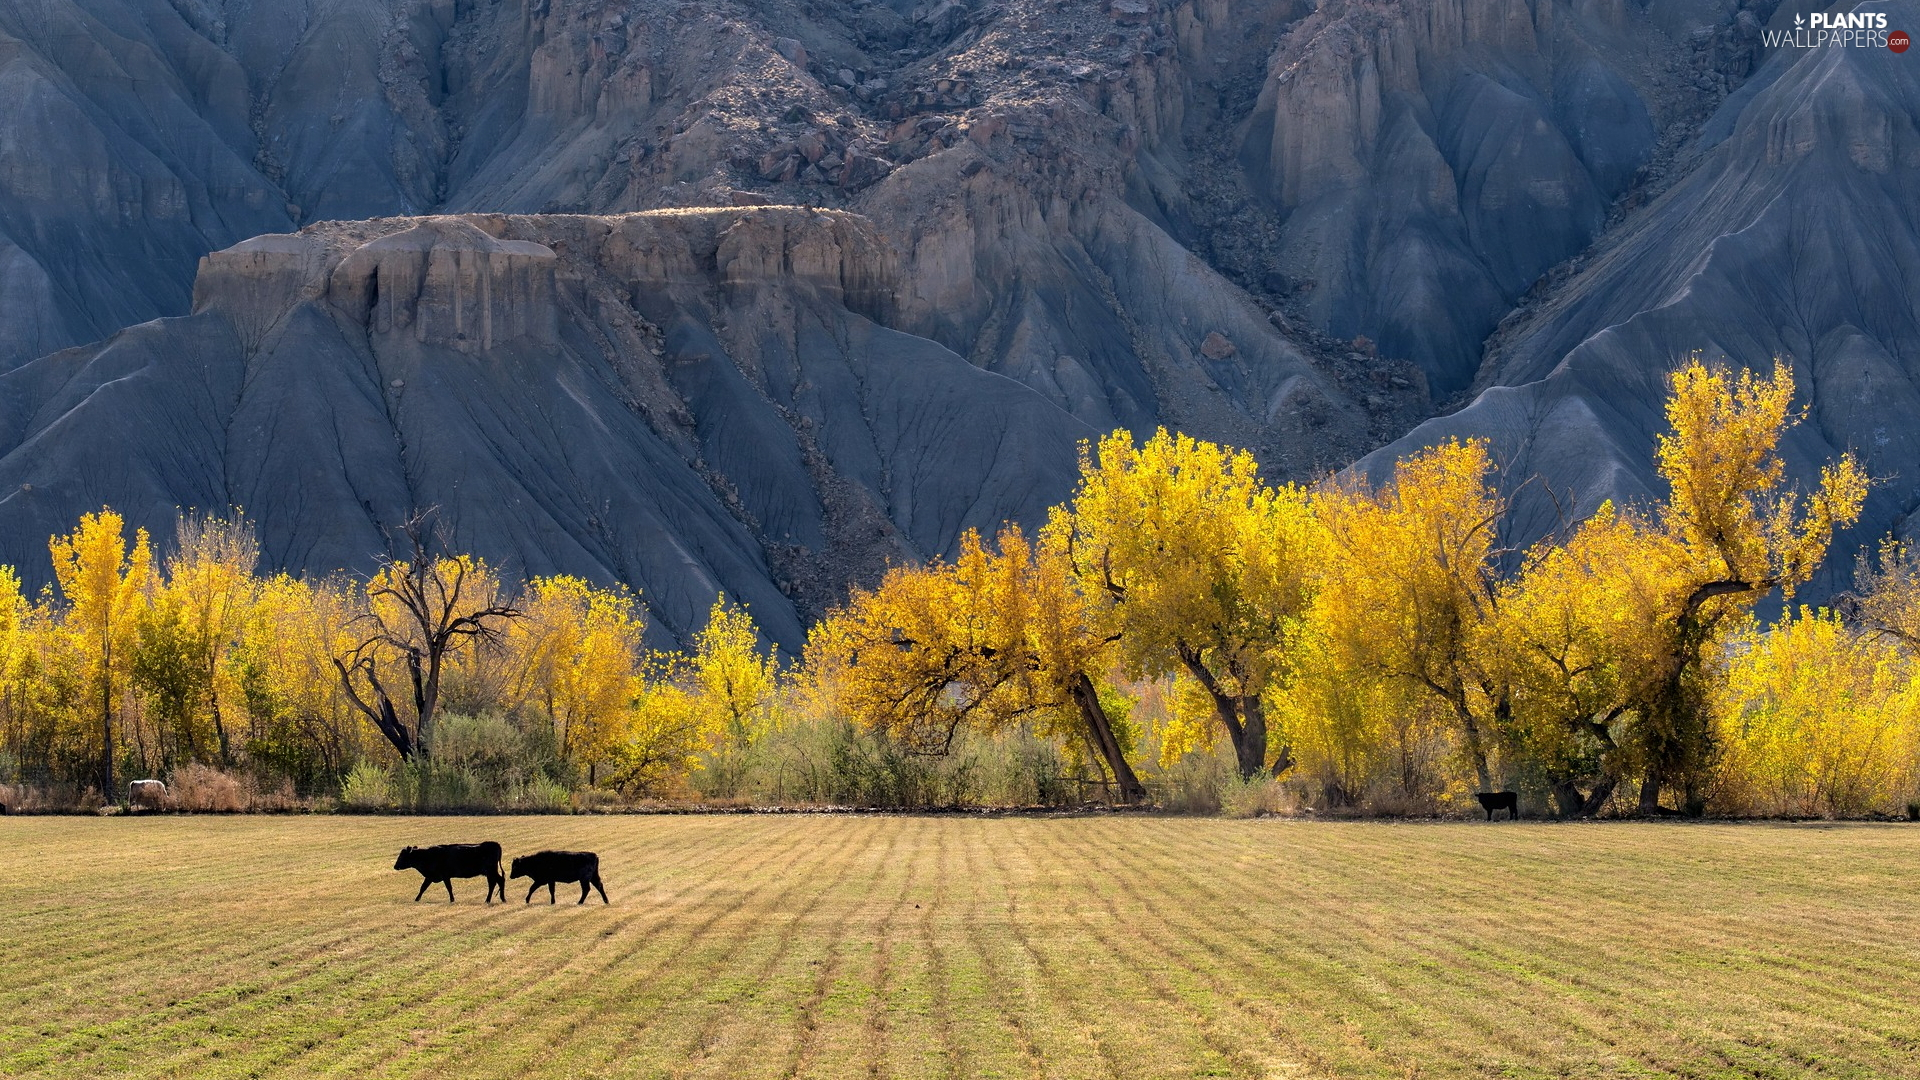 autumn, trees, mountains, viewes, field, Cows, slope